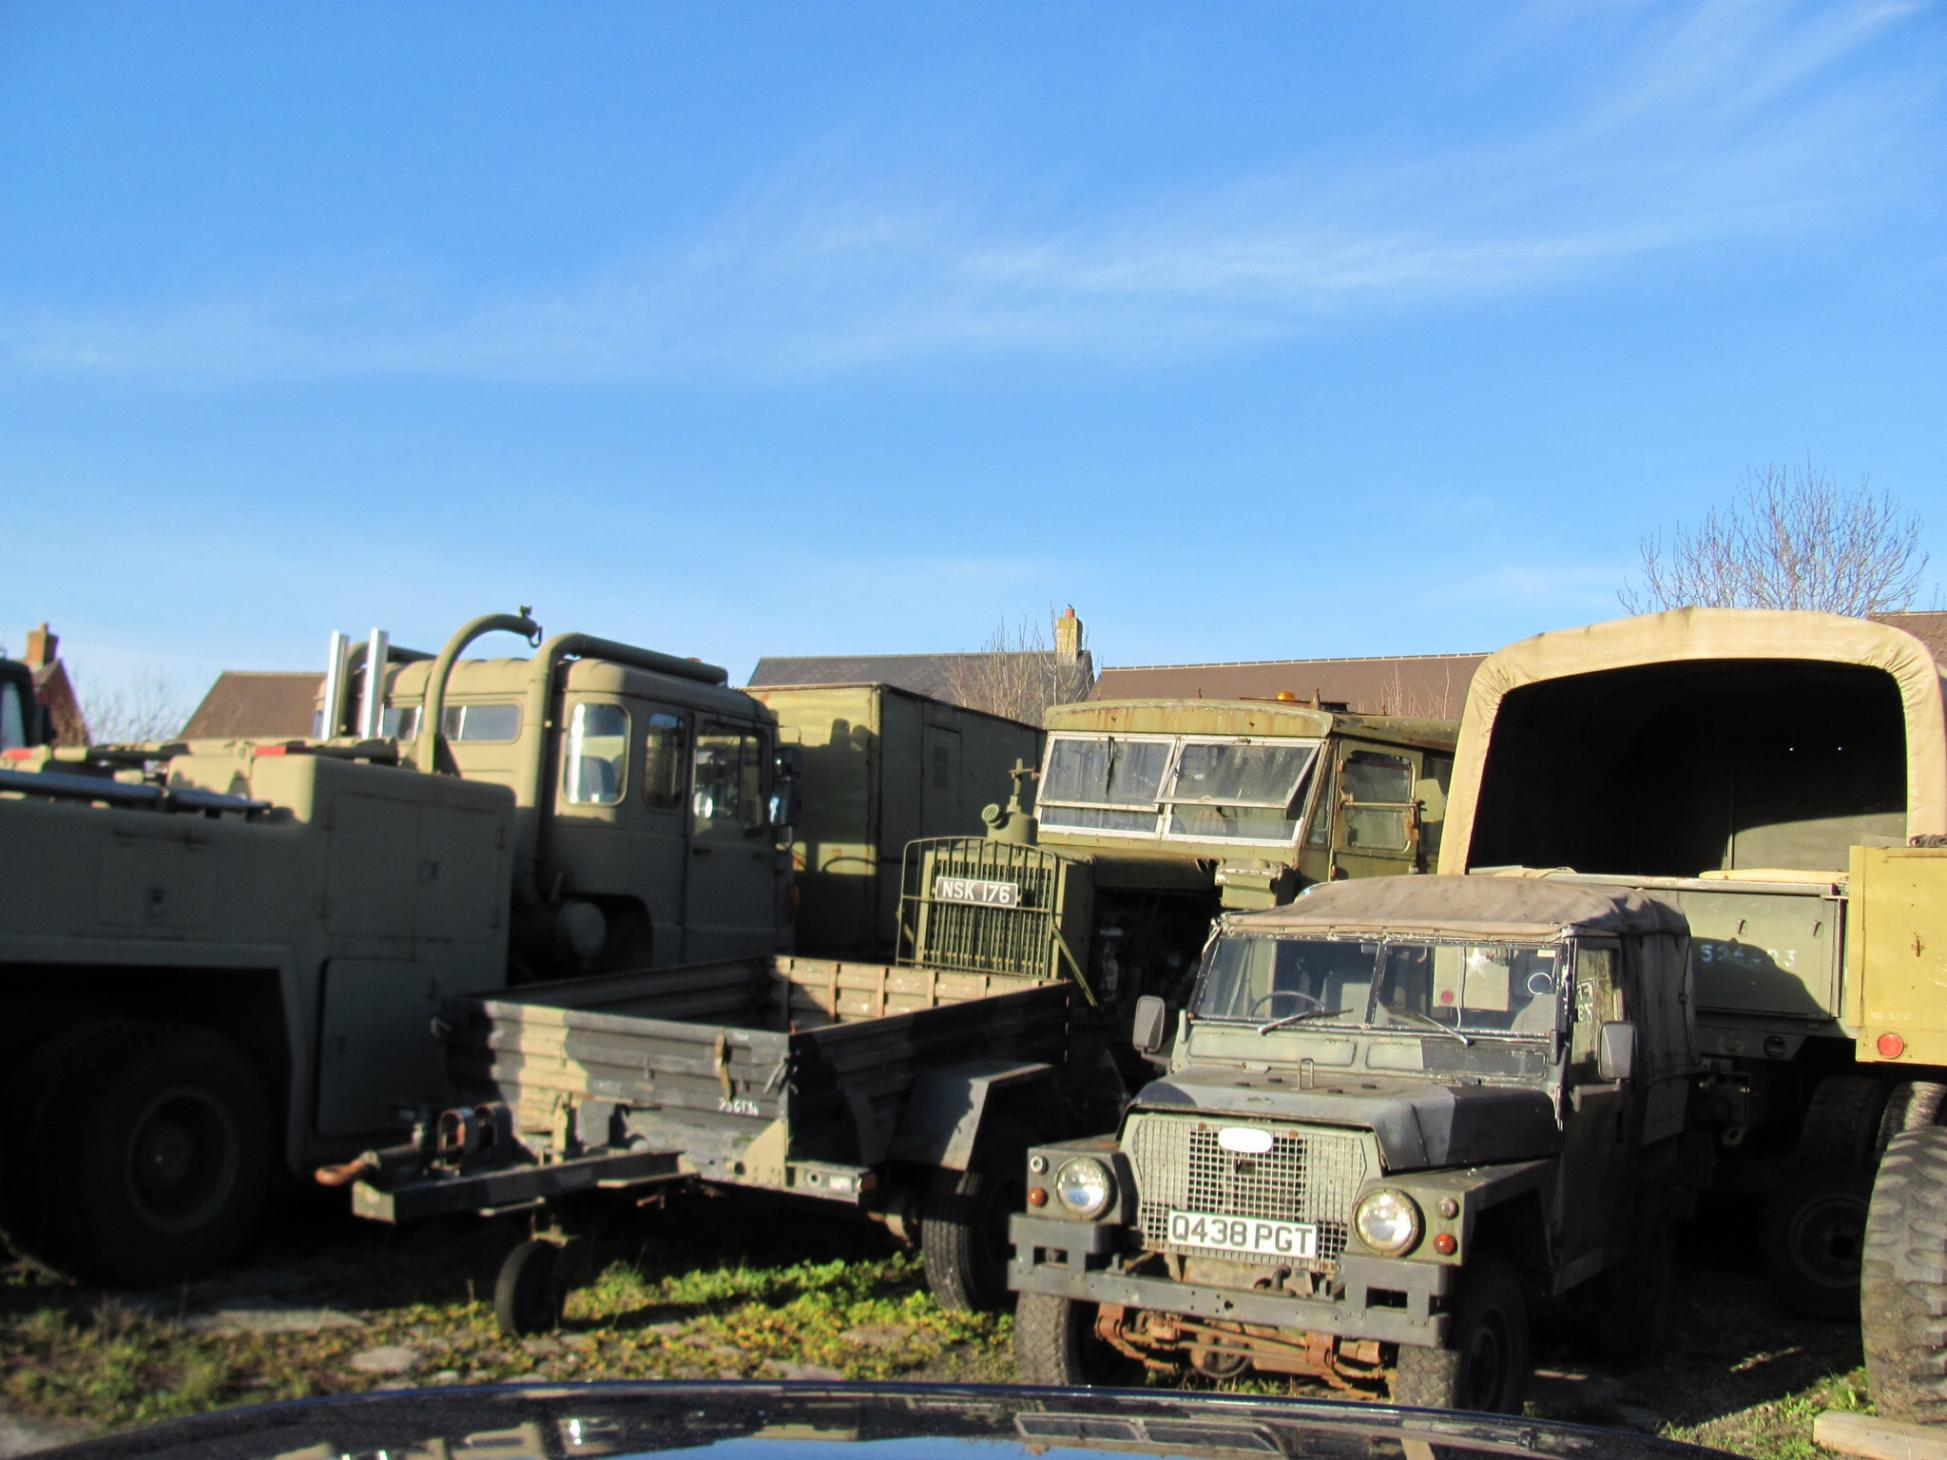 Auction of 30 years of collecting military vehicles - Heads Up: For